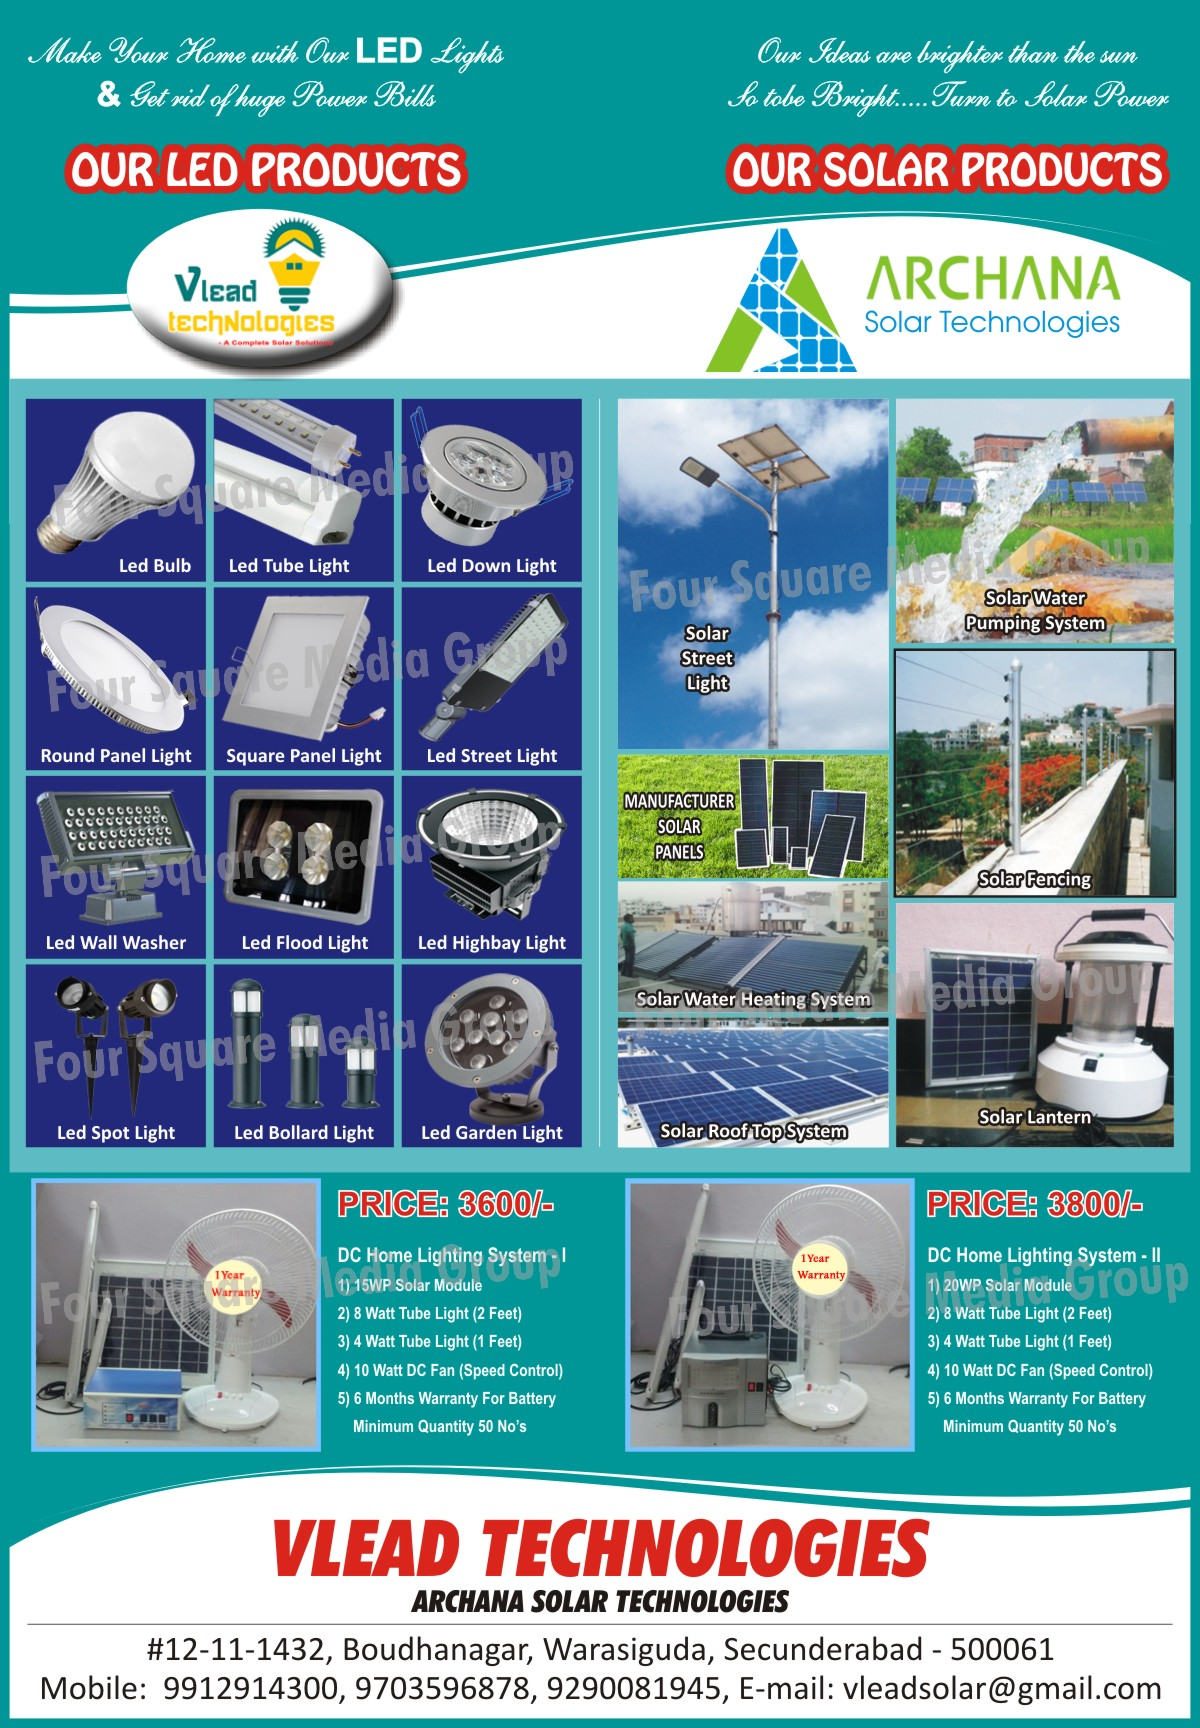 Led bulbs, Led Tube Lights, Led Down Lights, Led Round Panel Lights, Led Square Panel Lights, Led Street Lights, Led Wall Washers, Led Flood Lights, Led High bay Lights, Led Spot Lights, Led bollard Lights, Led Garden Lights, Solar Street Lights, Solar Water Pumping Systems, Solar Fencing, Solar Water Heating Systems, Solar Lanterns, Solar Roof Top Systems, Solar Panels, DC Home Lighting Systems